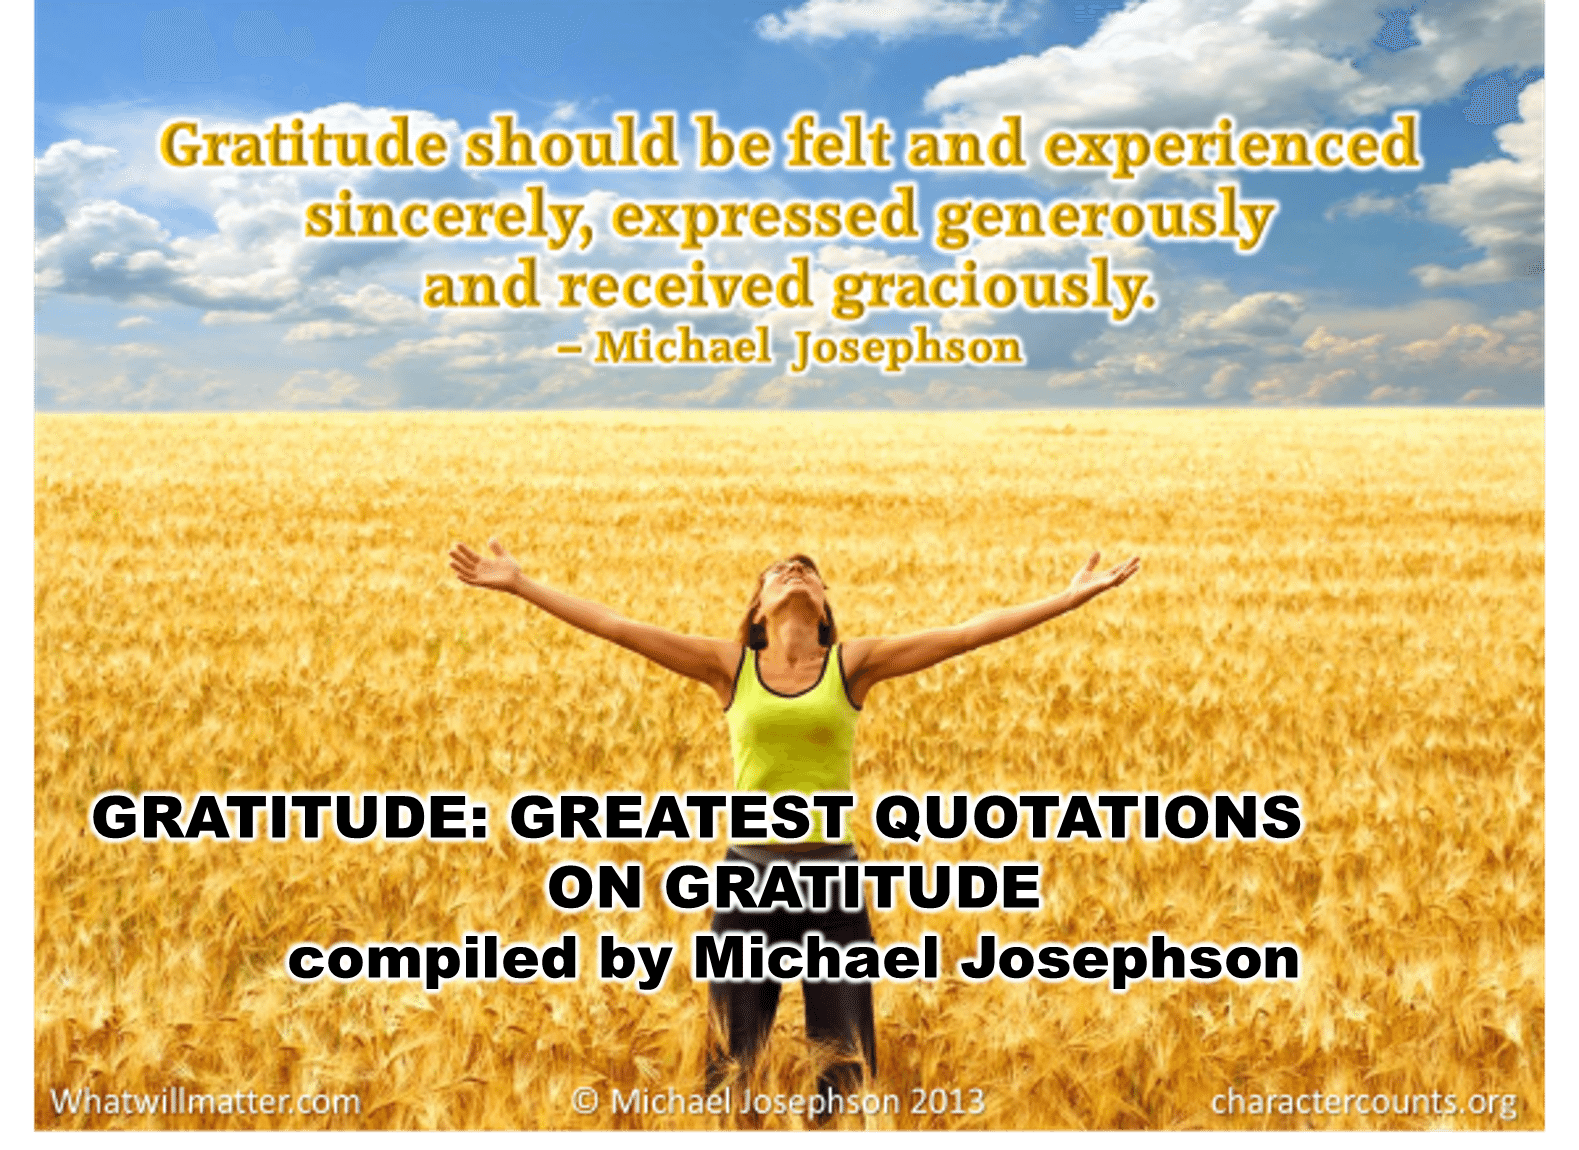 Quotes Gratitude Greatest Quotations On Gratitude  What Will Matter